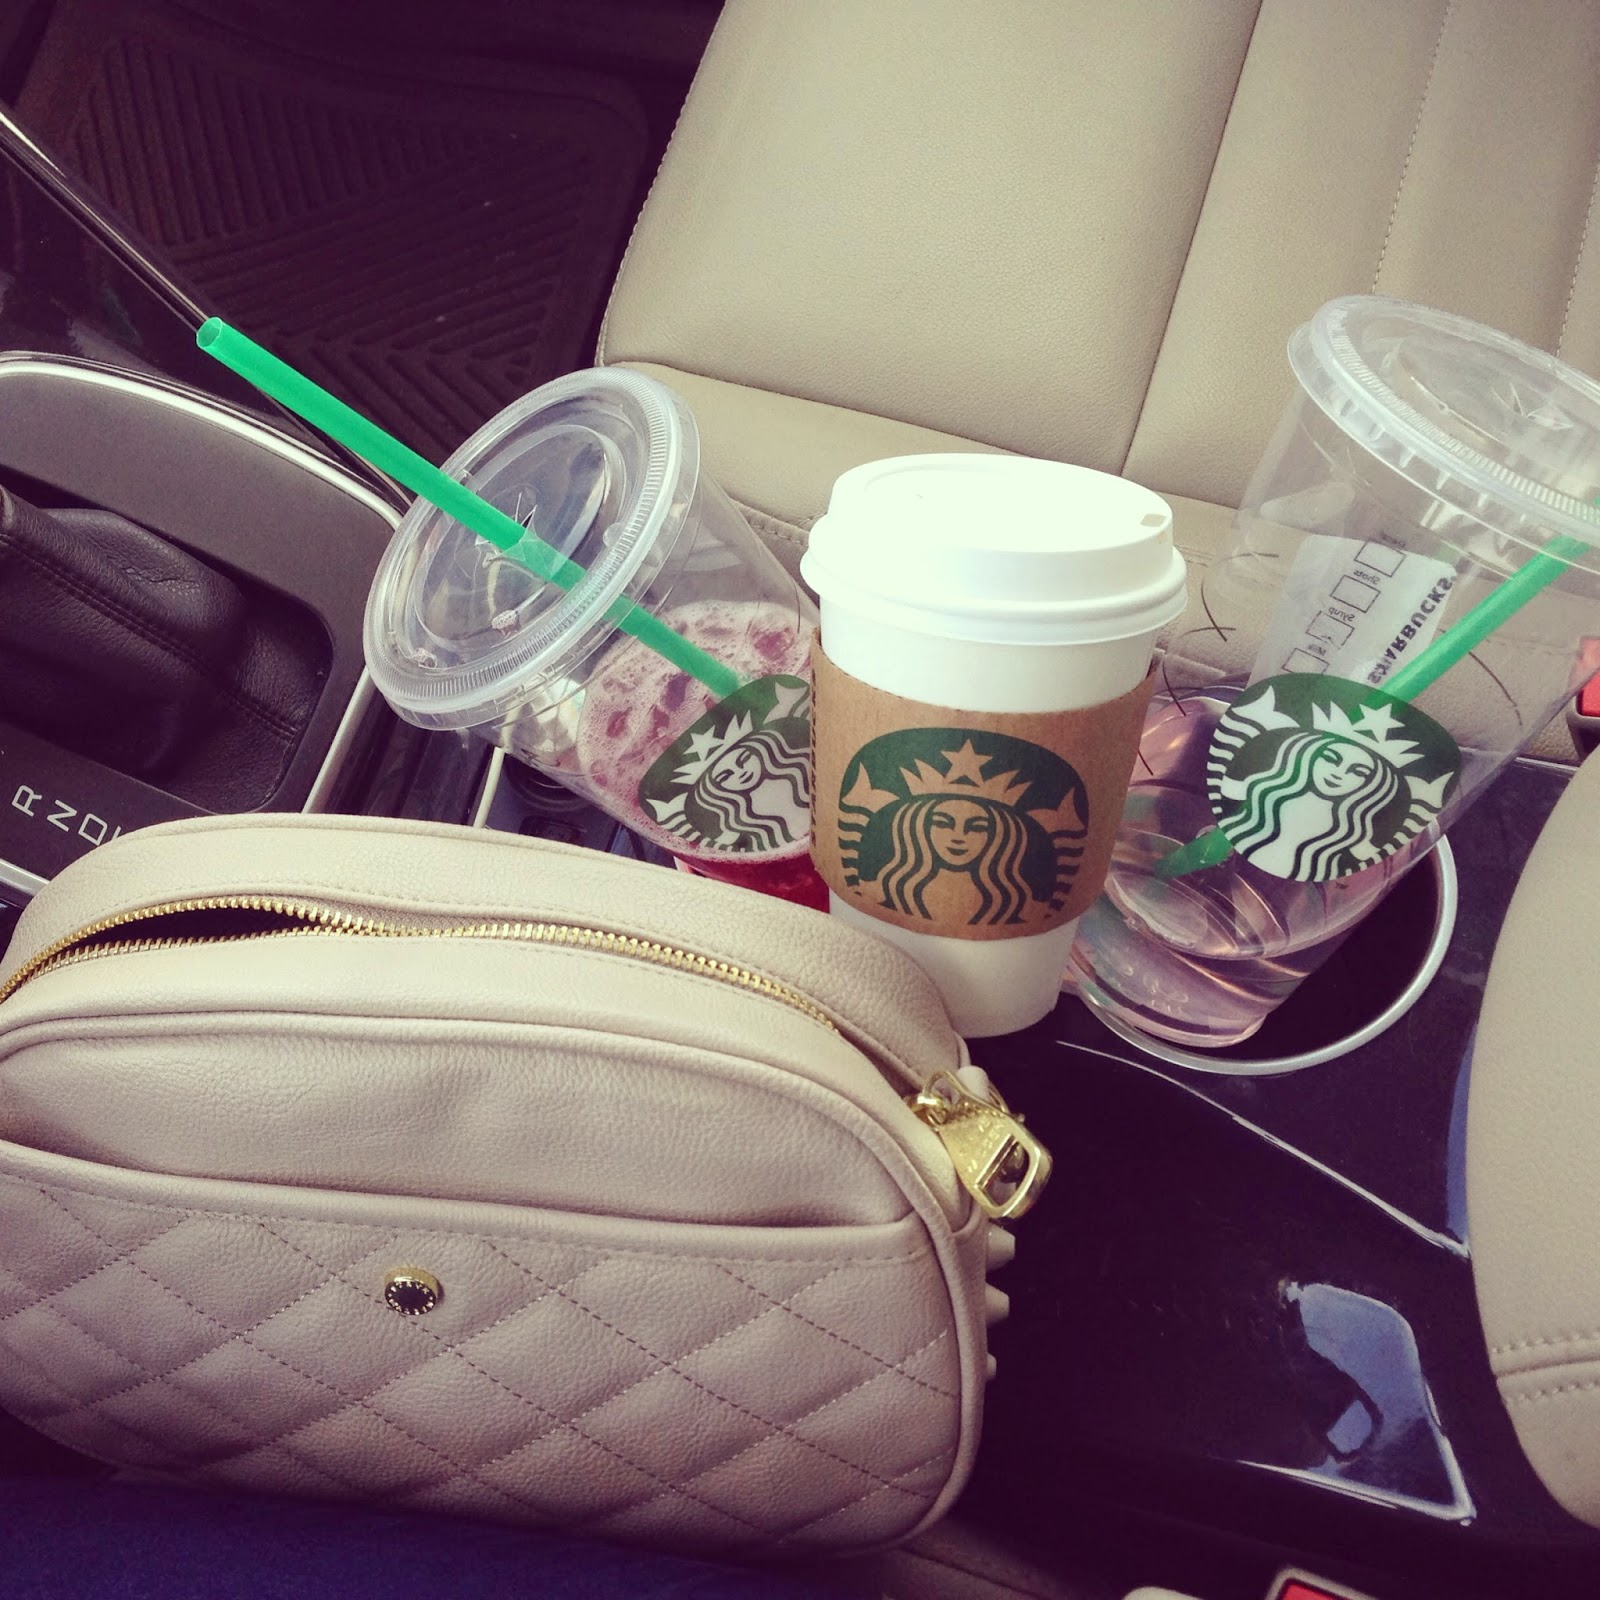 starbucks, white girl problems, instagram, starbucks addiction, natalie craig, natalie in the city, fashion blogger, caffine fix, white girl probs, car